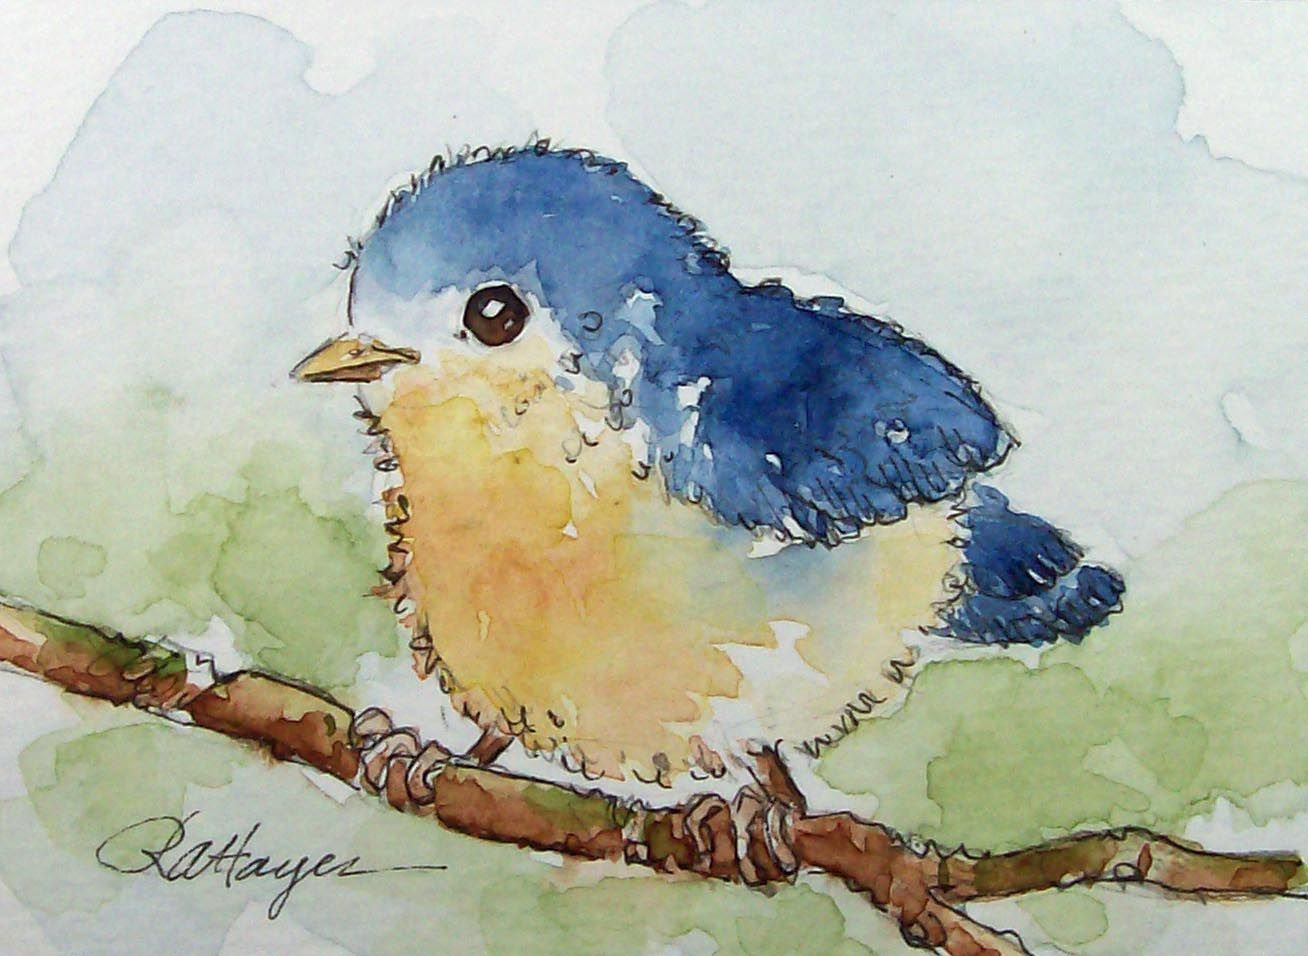 Etsy water color prints of cute animals for baby